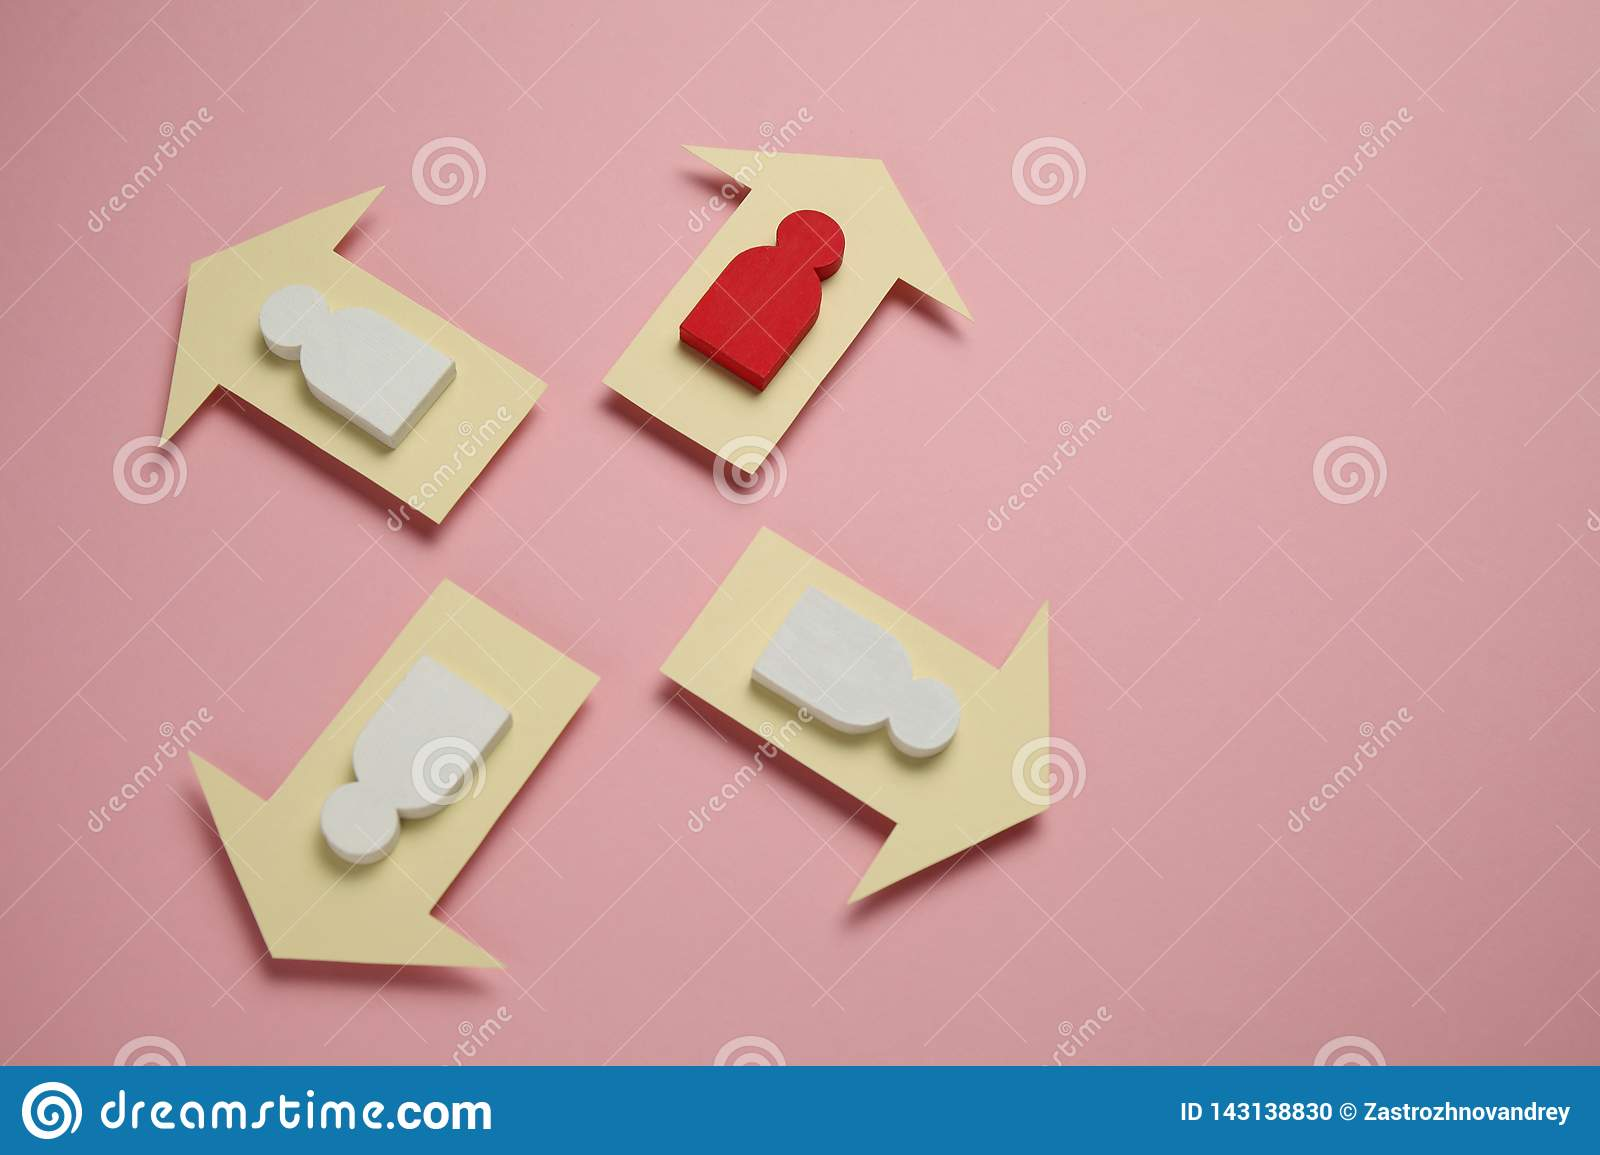 Figures of people and arrows on pink background. Women`s ambitions and achievements and success